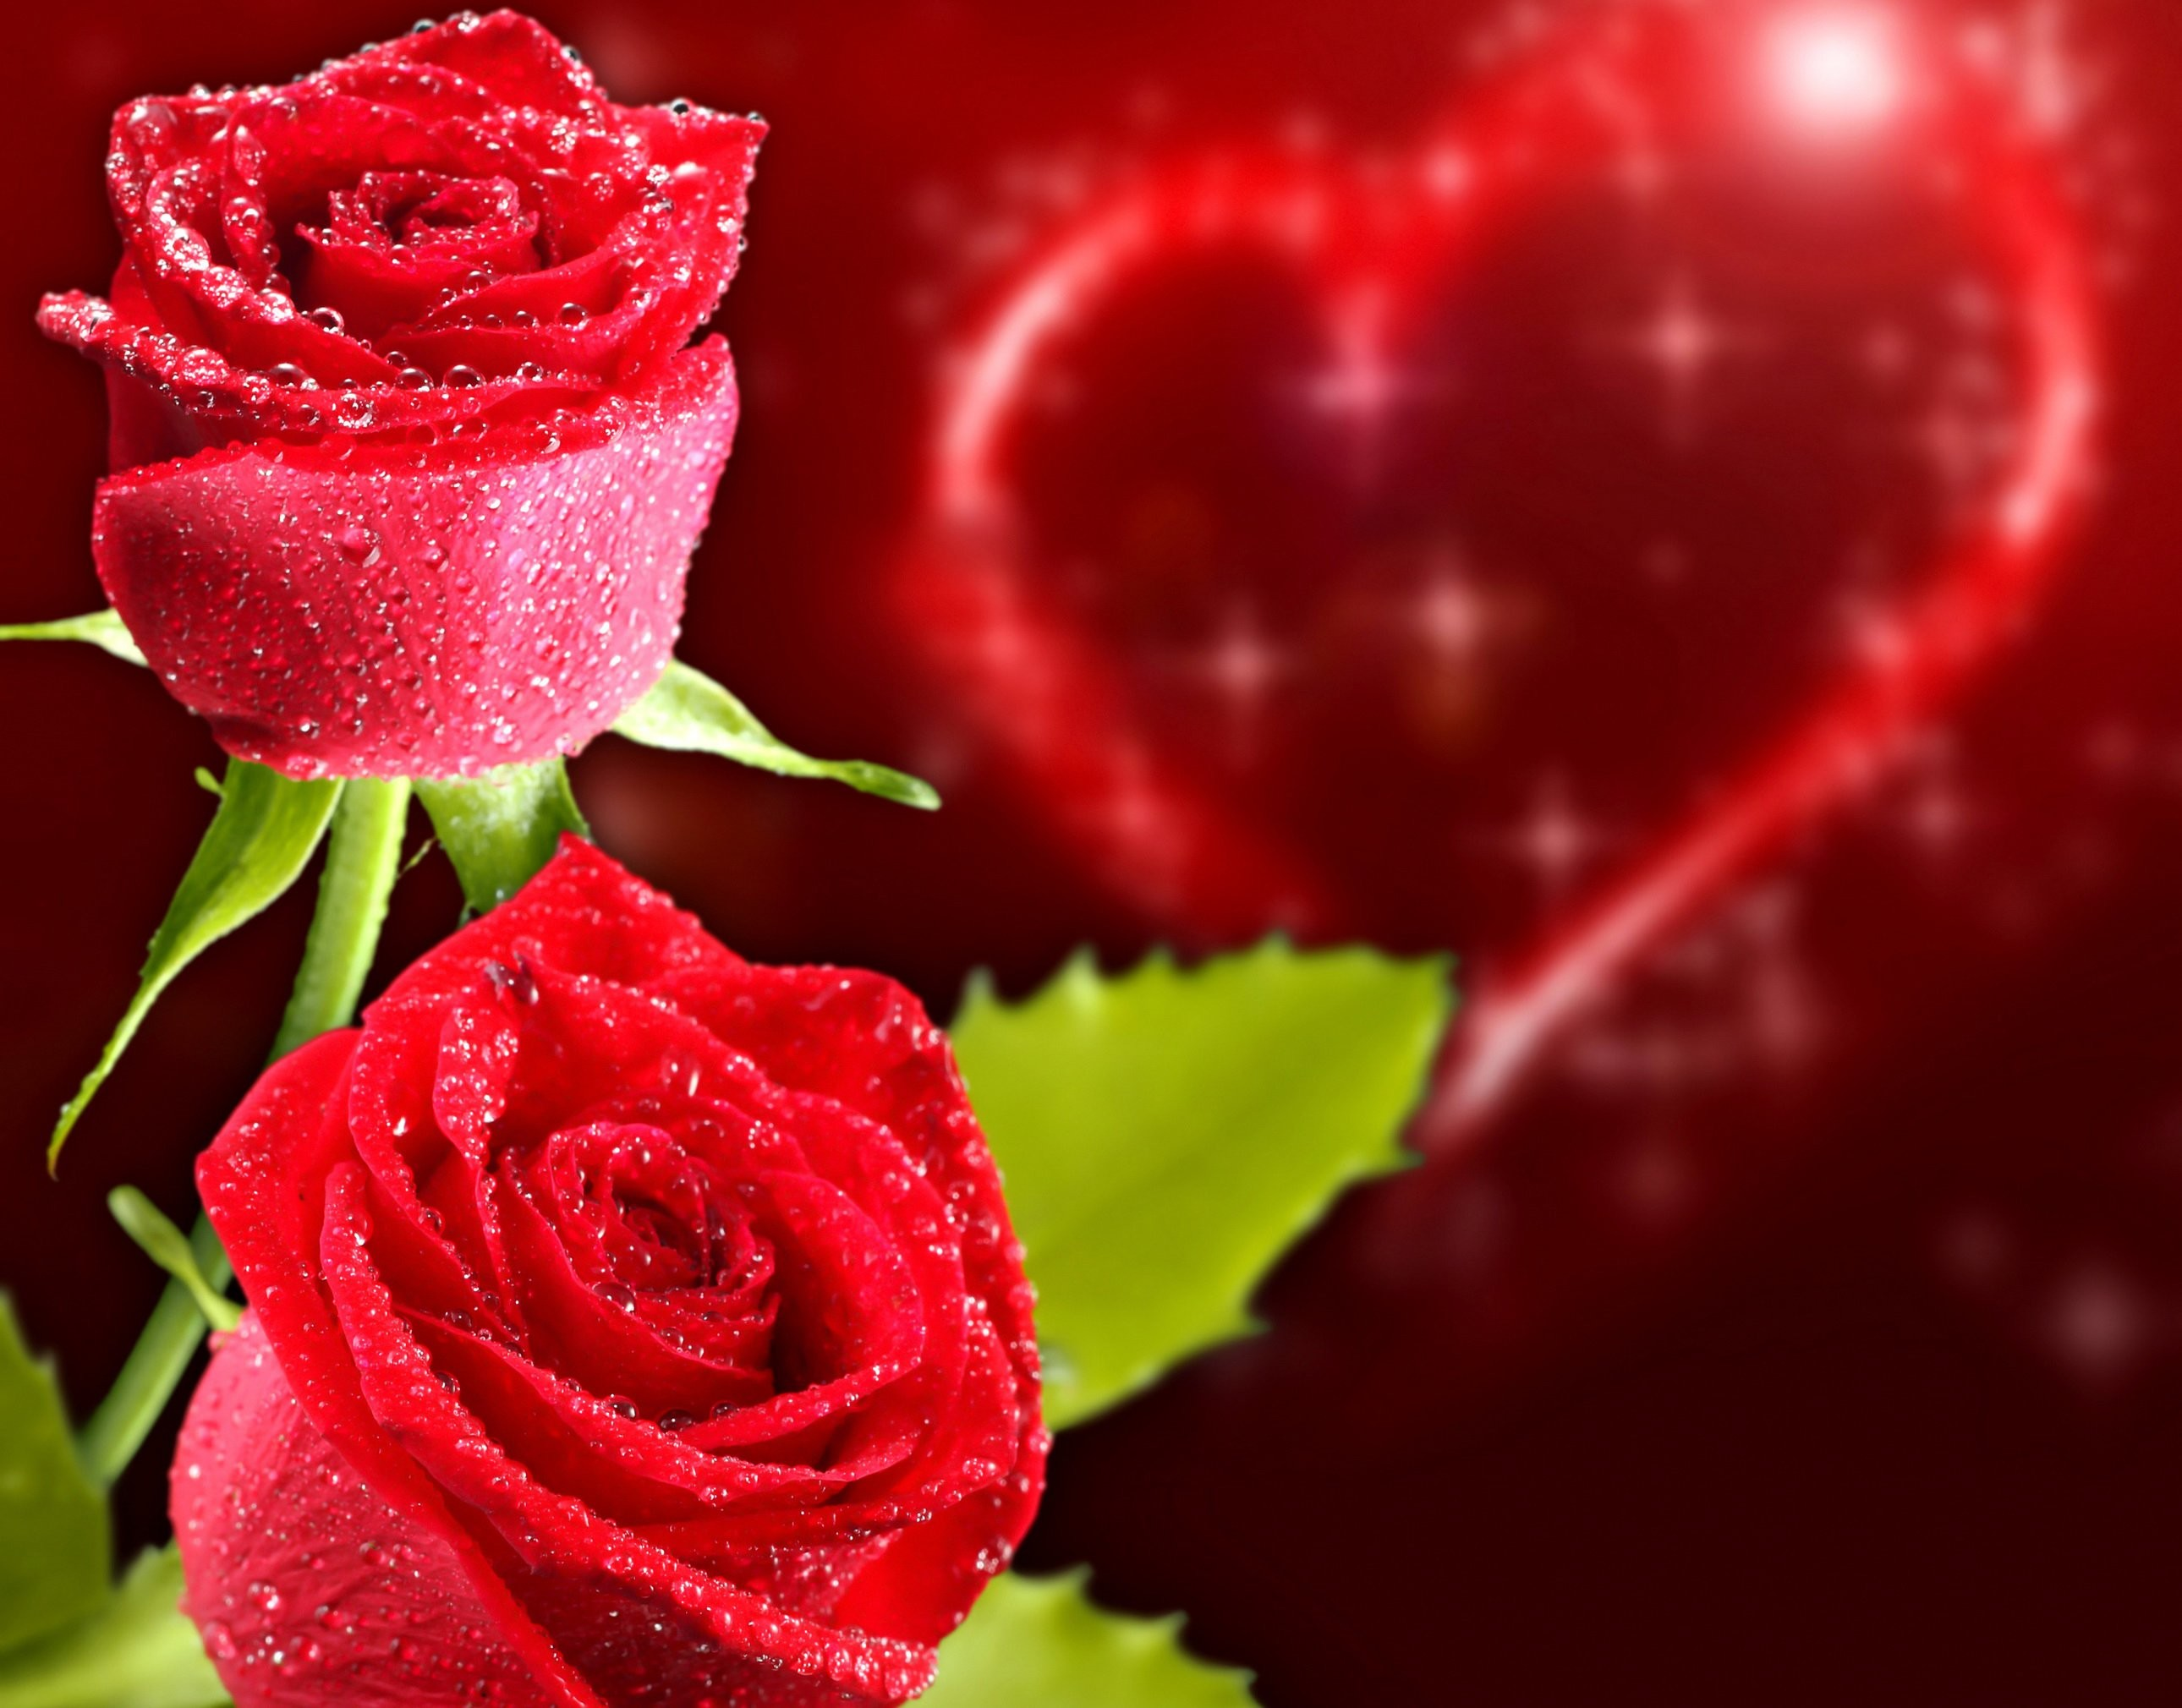 2560x1600 Rare Picture Of Hearts And Flowers Wallpaper For Love Heart Images Hd Pics Androids